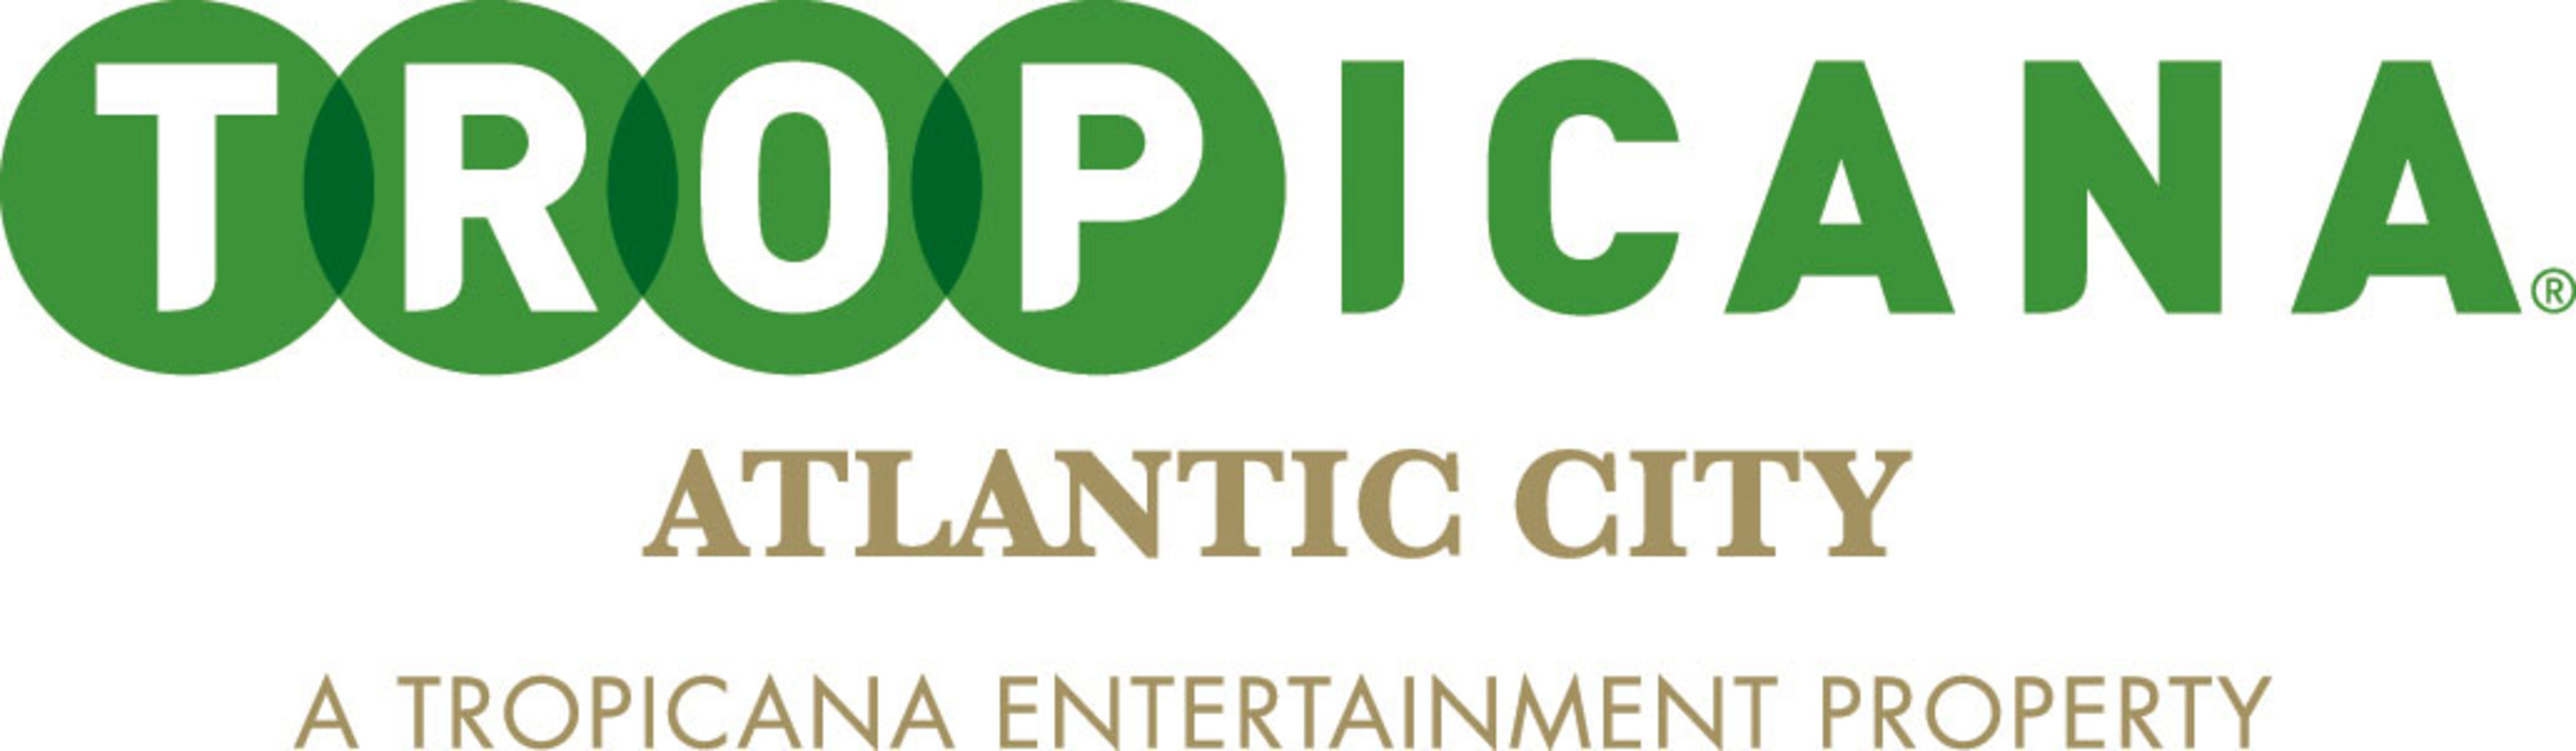 Tropicana Casino and Resort is a 24-hour gaming destination located on the beach and Boardwalk. Featuring 2,079  ...